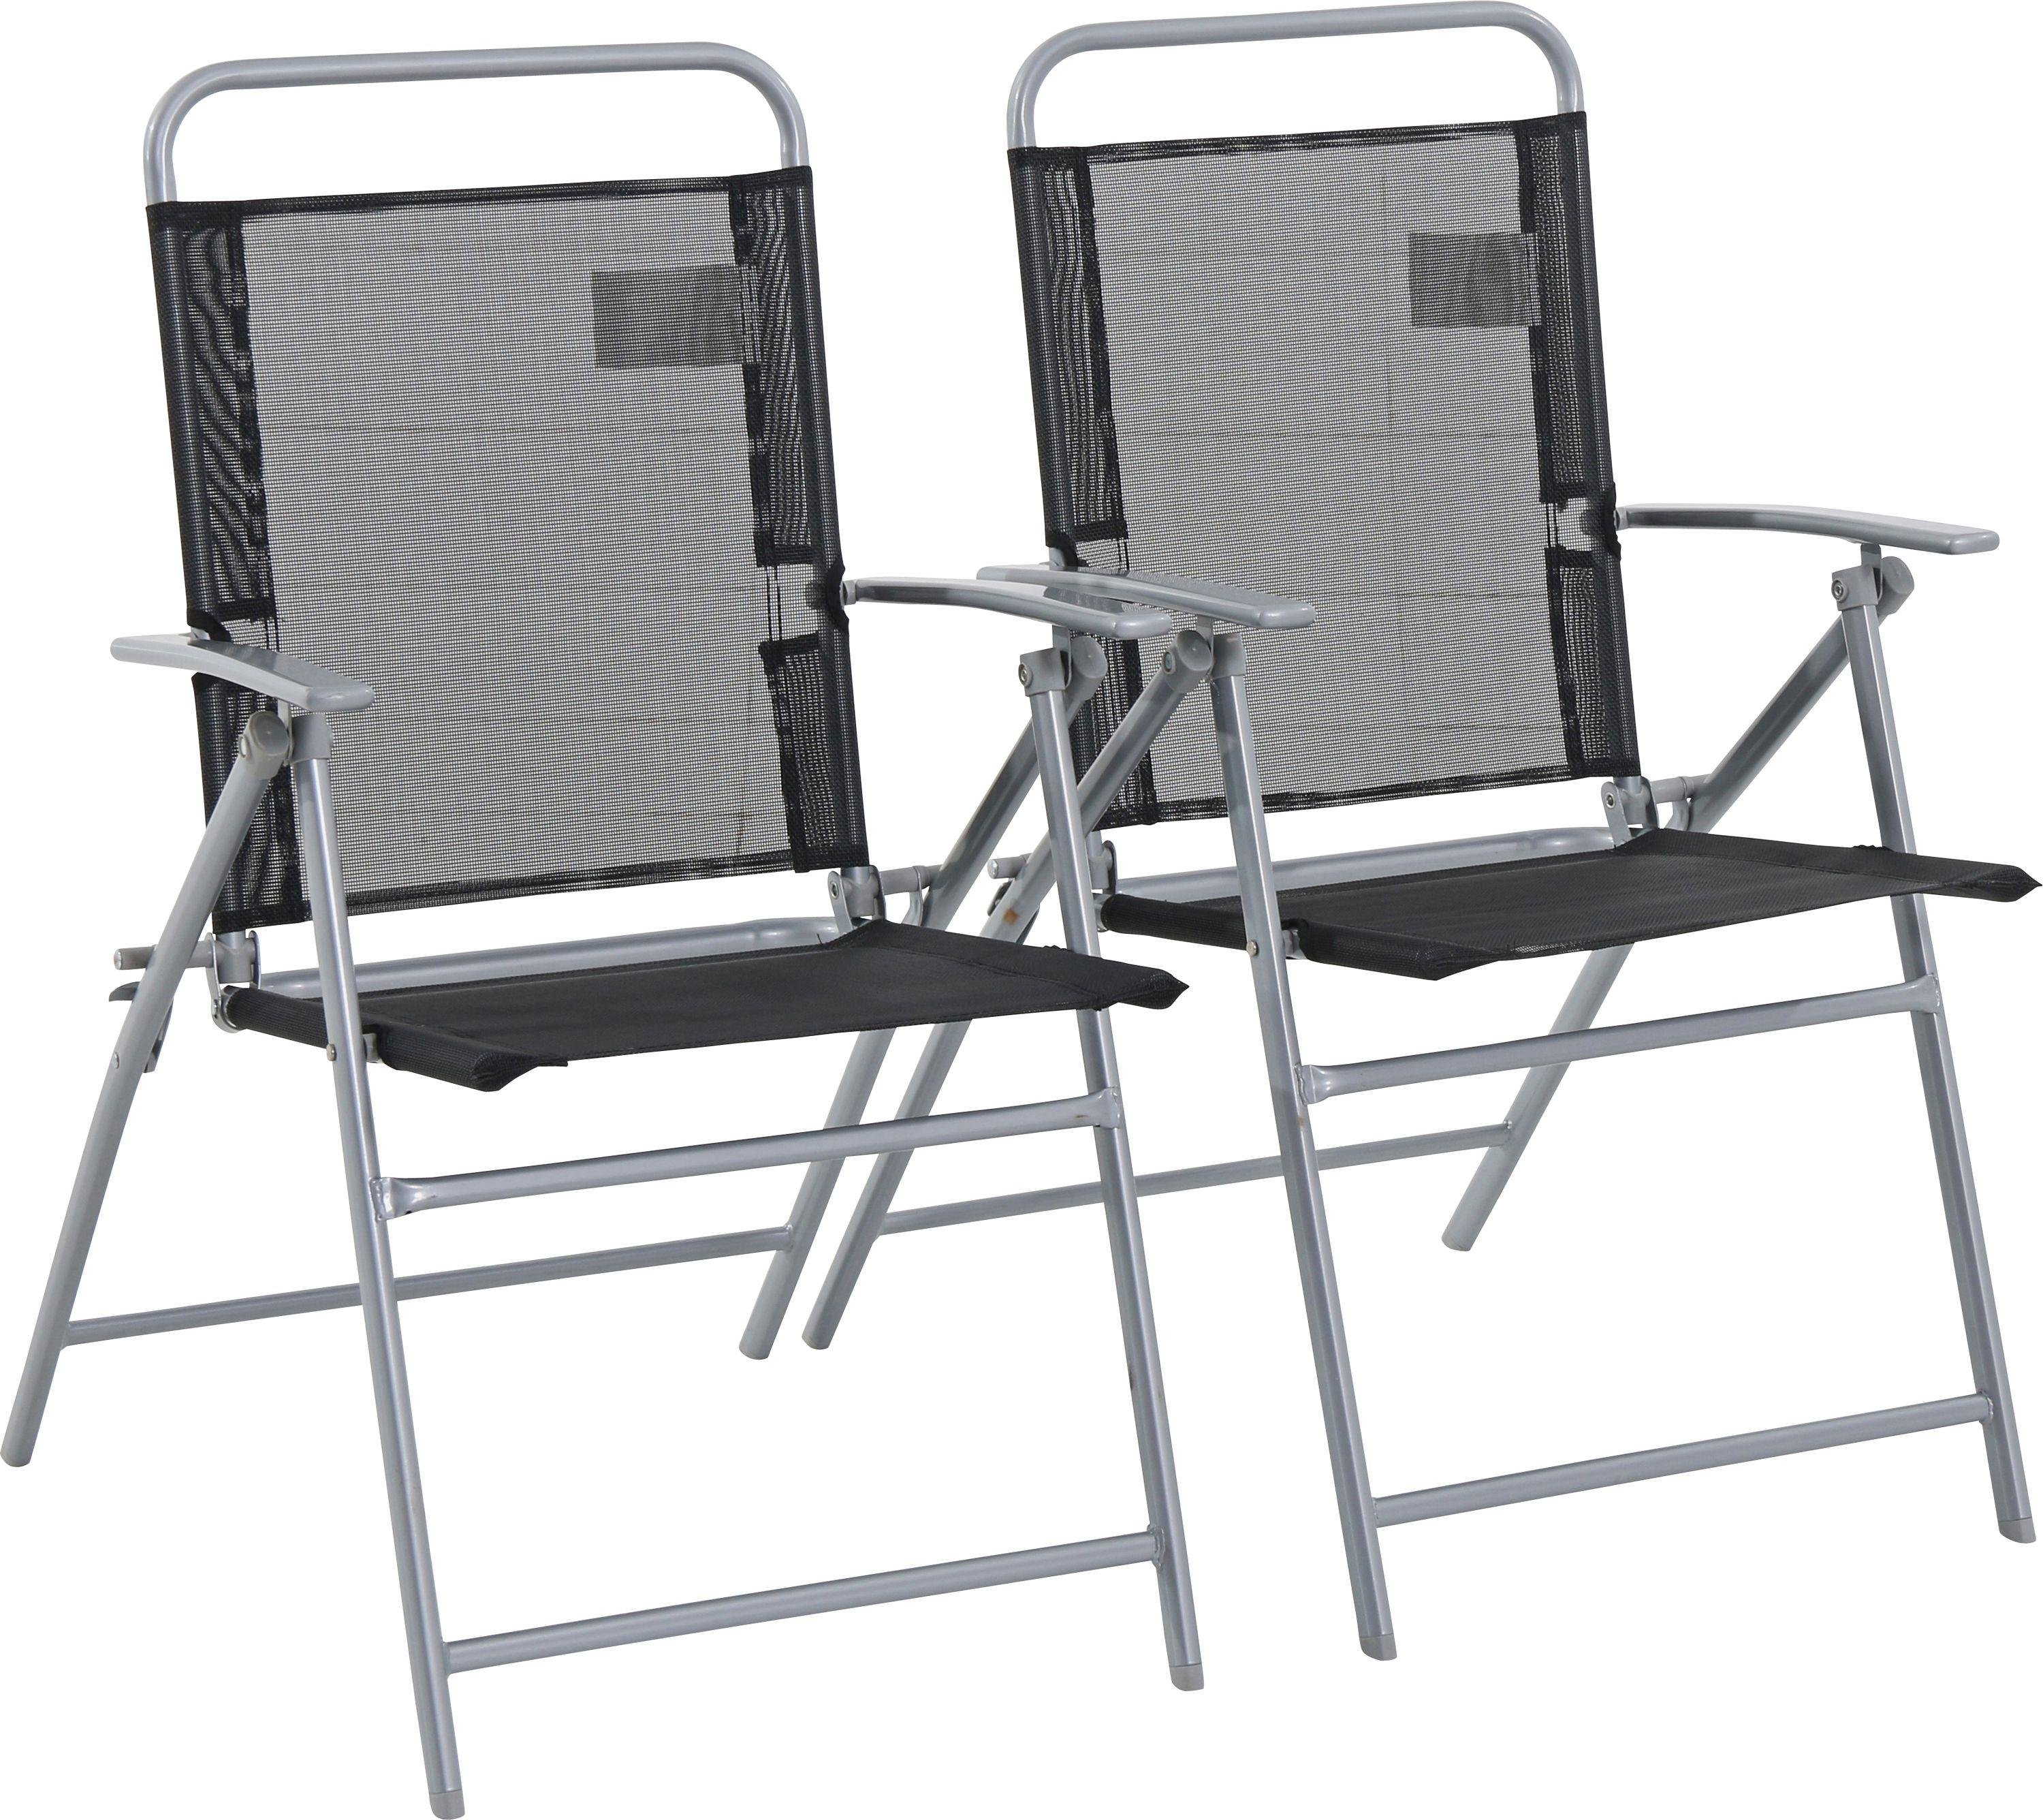 folding chair uk high for kitchen counter buy argos home atlantic steel chairs set of 2 garden